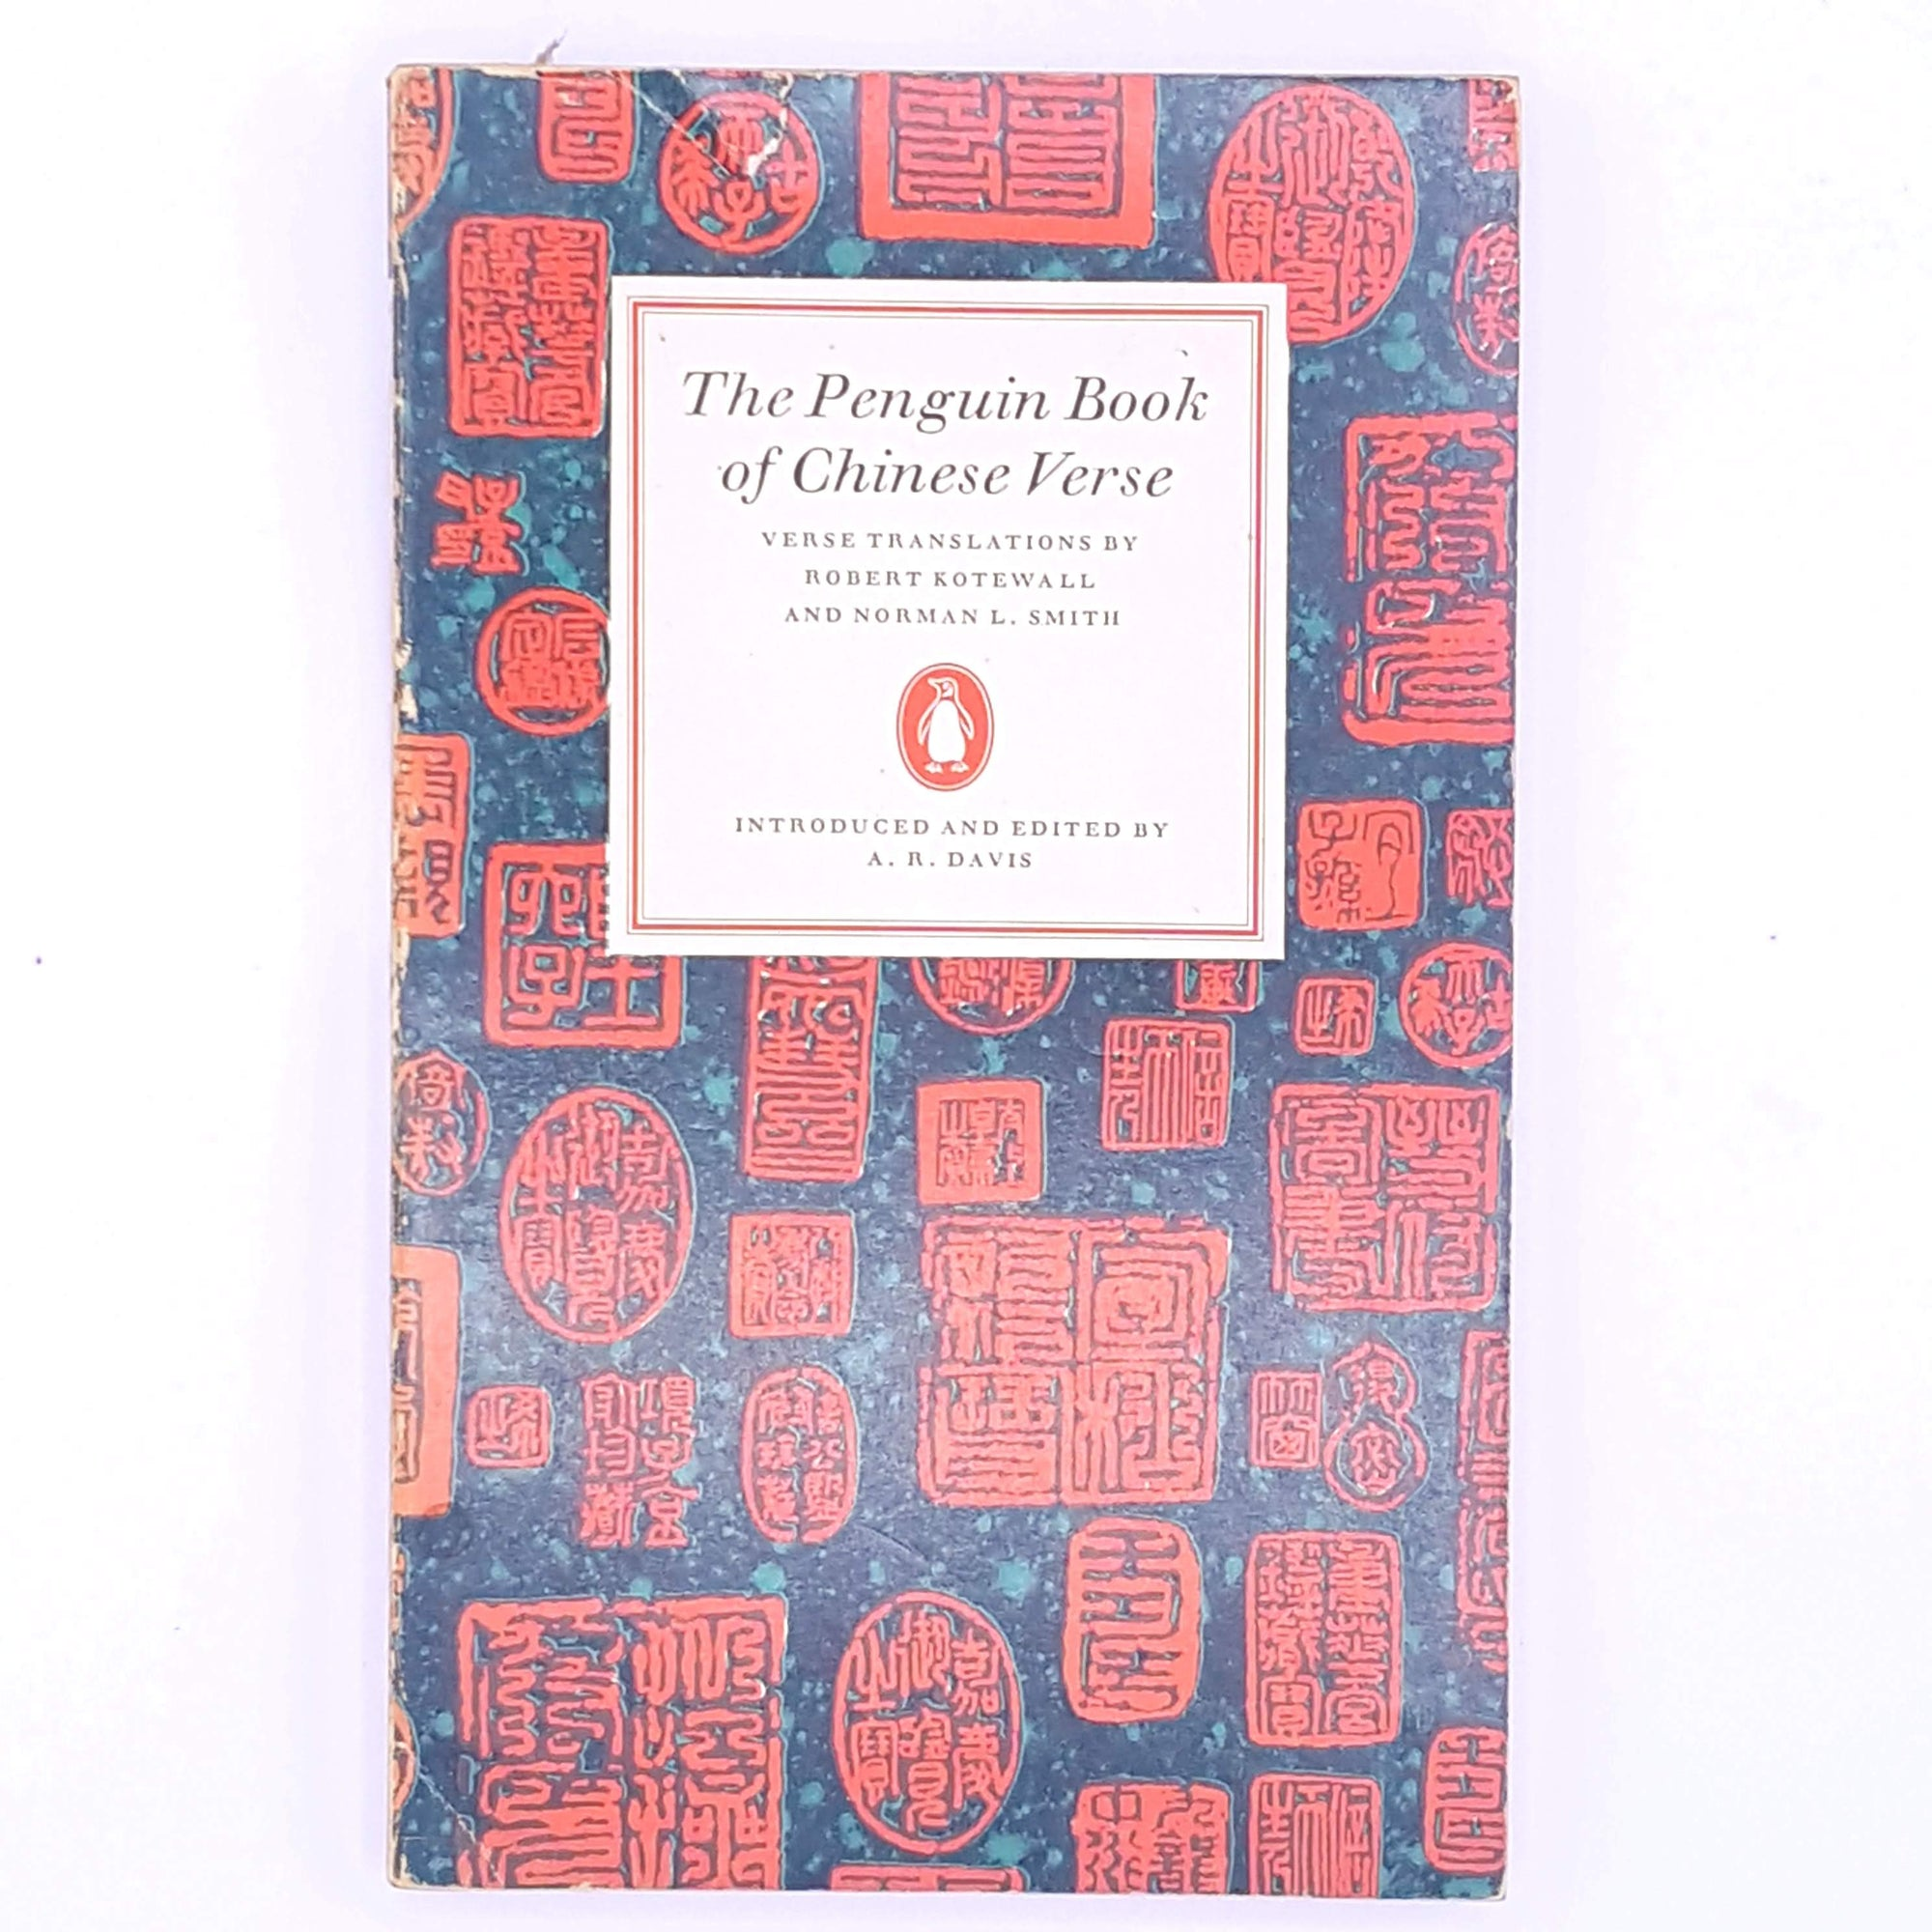 The Penguin Book of Chinese Verse, A.R.Davis, 1968